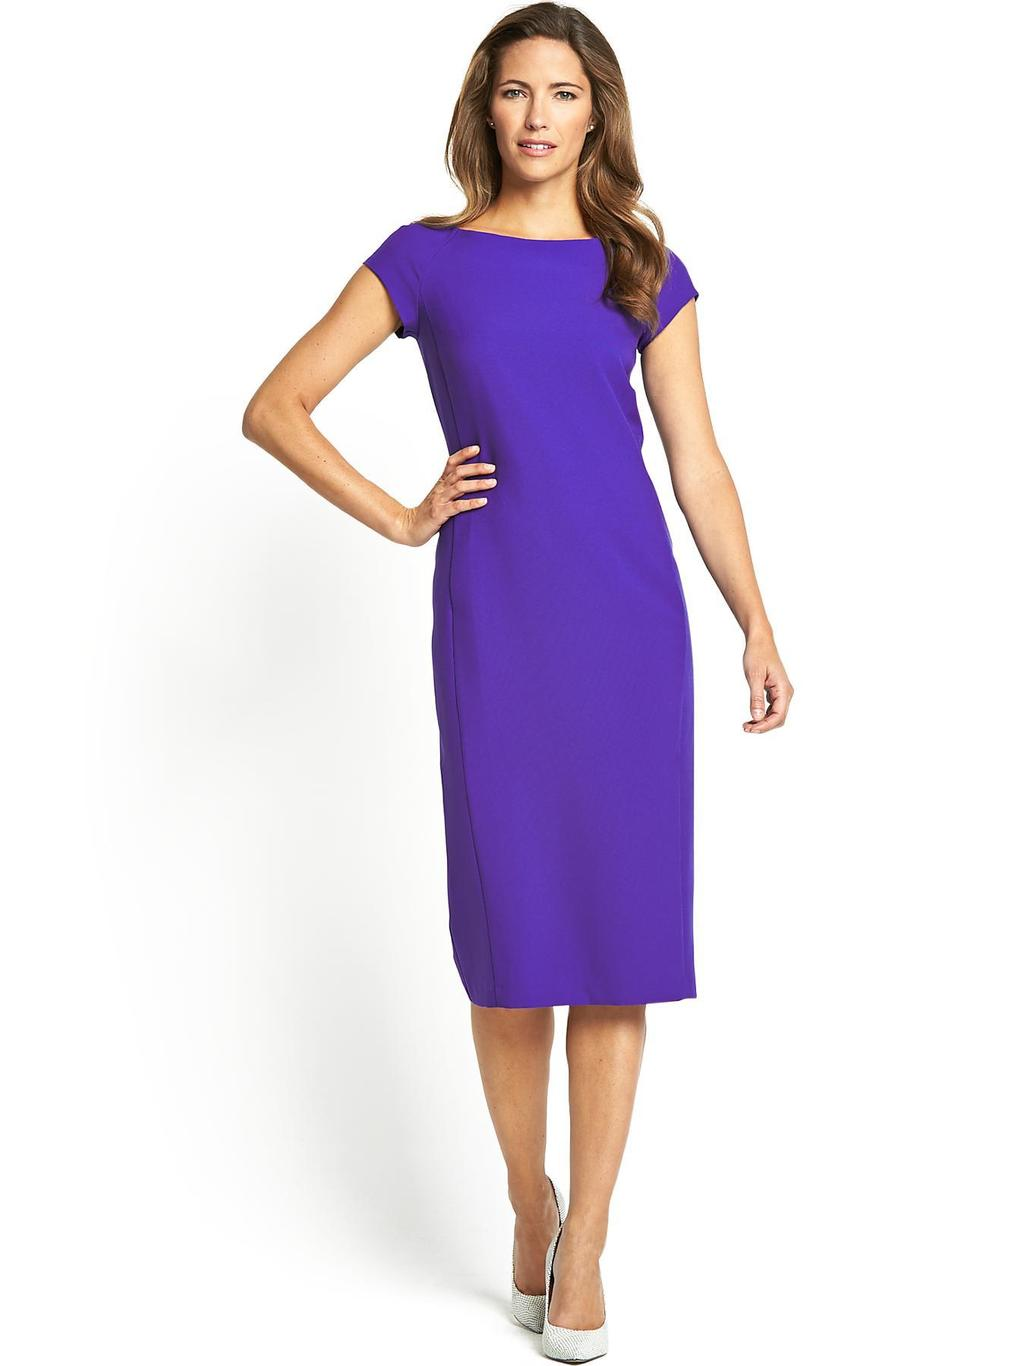 Simple Shift Dress, Red, Blue - style: shift; length: below the knee; neckline: slash/boat neckline; sleeve style: capped; fit: tailored/fitted; pattern: plain; predominant colour: royal blue; occasions: evening, occasion; fibres: polyester/polyamide - 100%; sleeve length: short sleeve; pattern type: fabric; texture group: other - light to midweight; season: s/s 2014